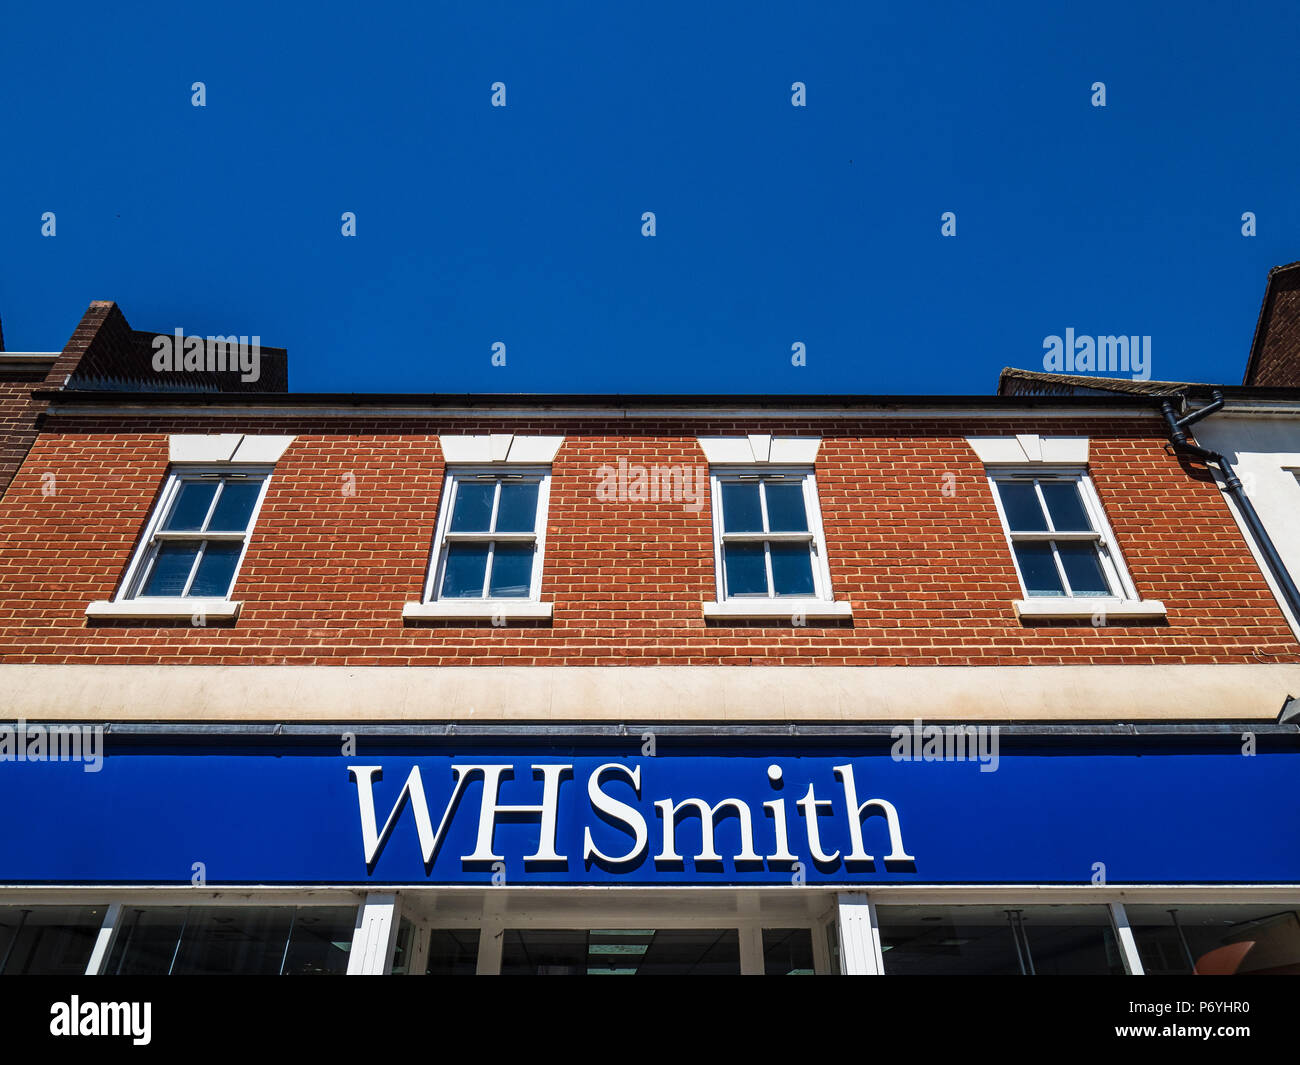 WH Smith Storefront - Stock Image